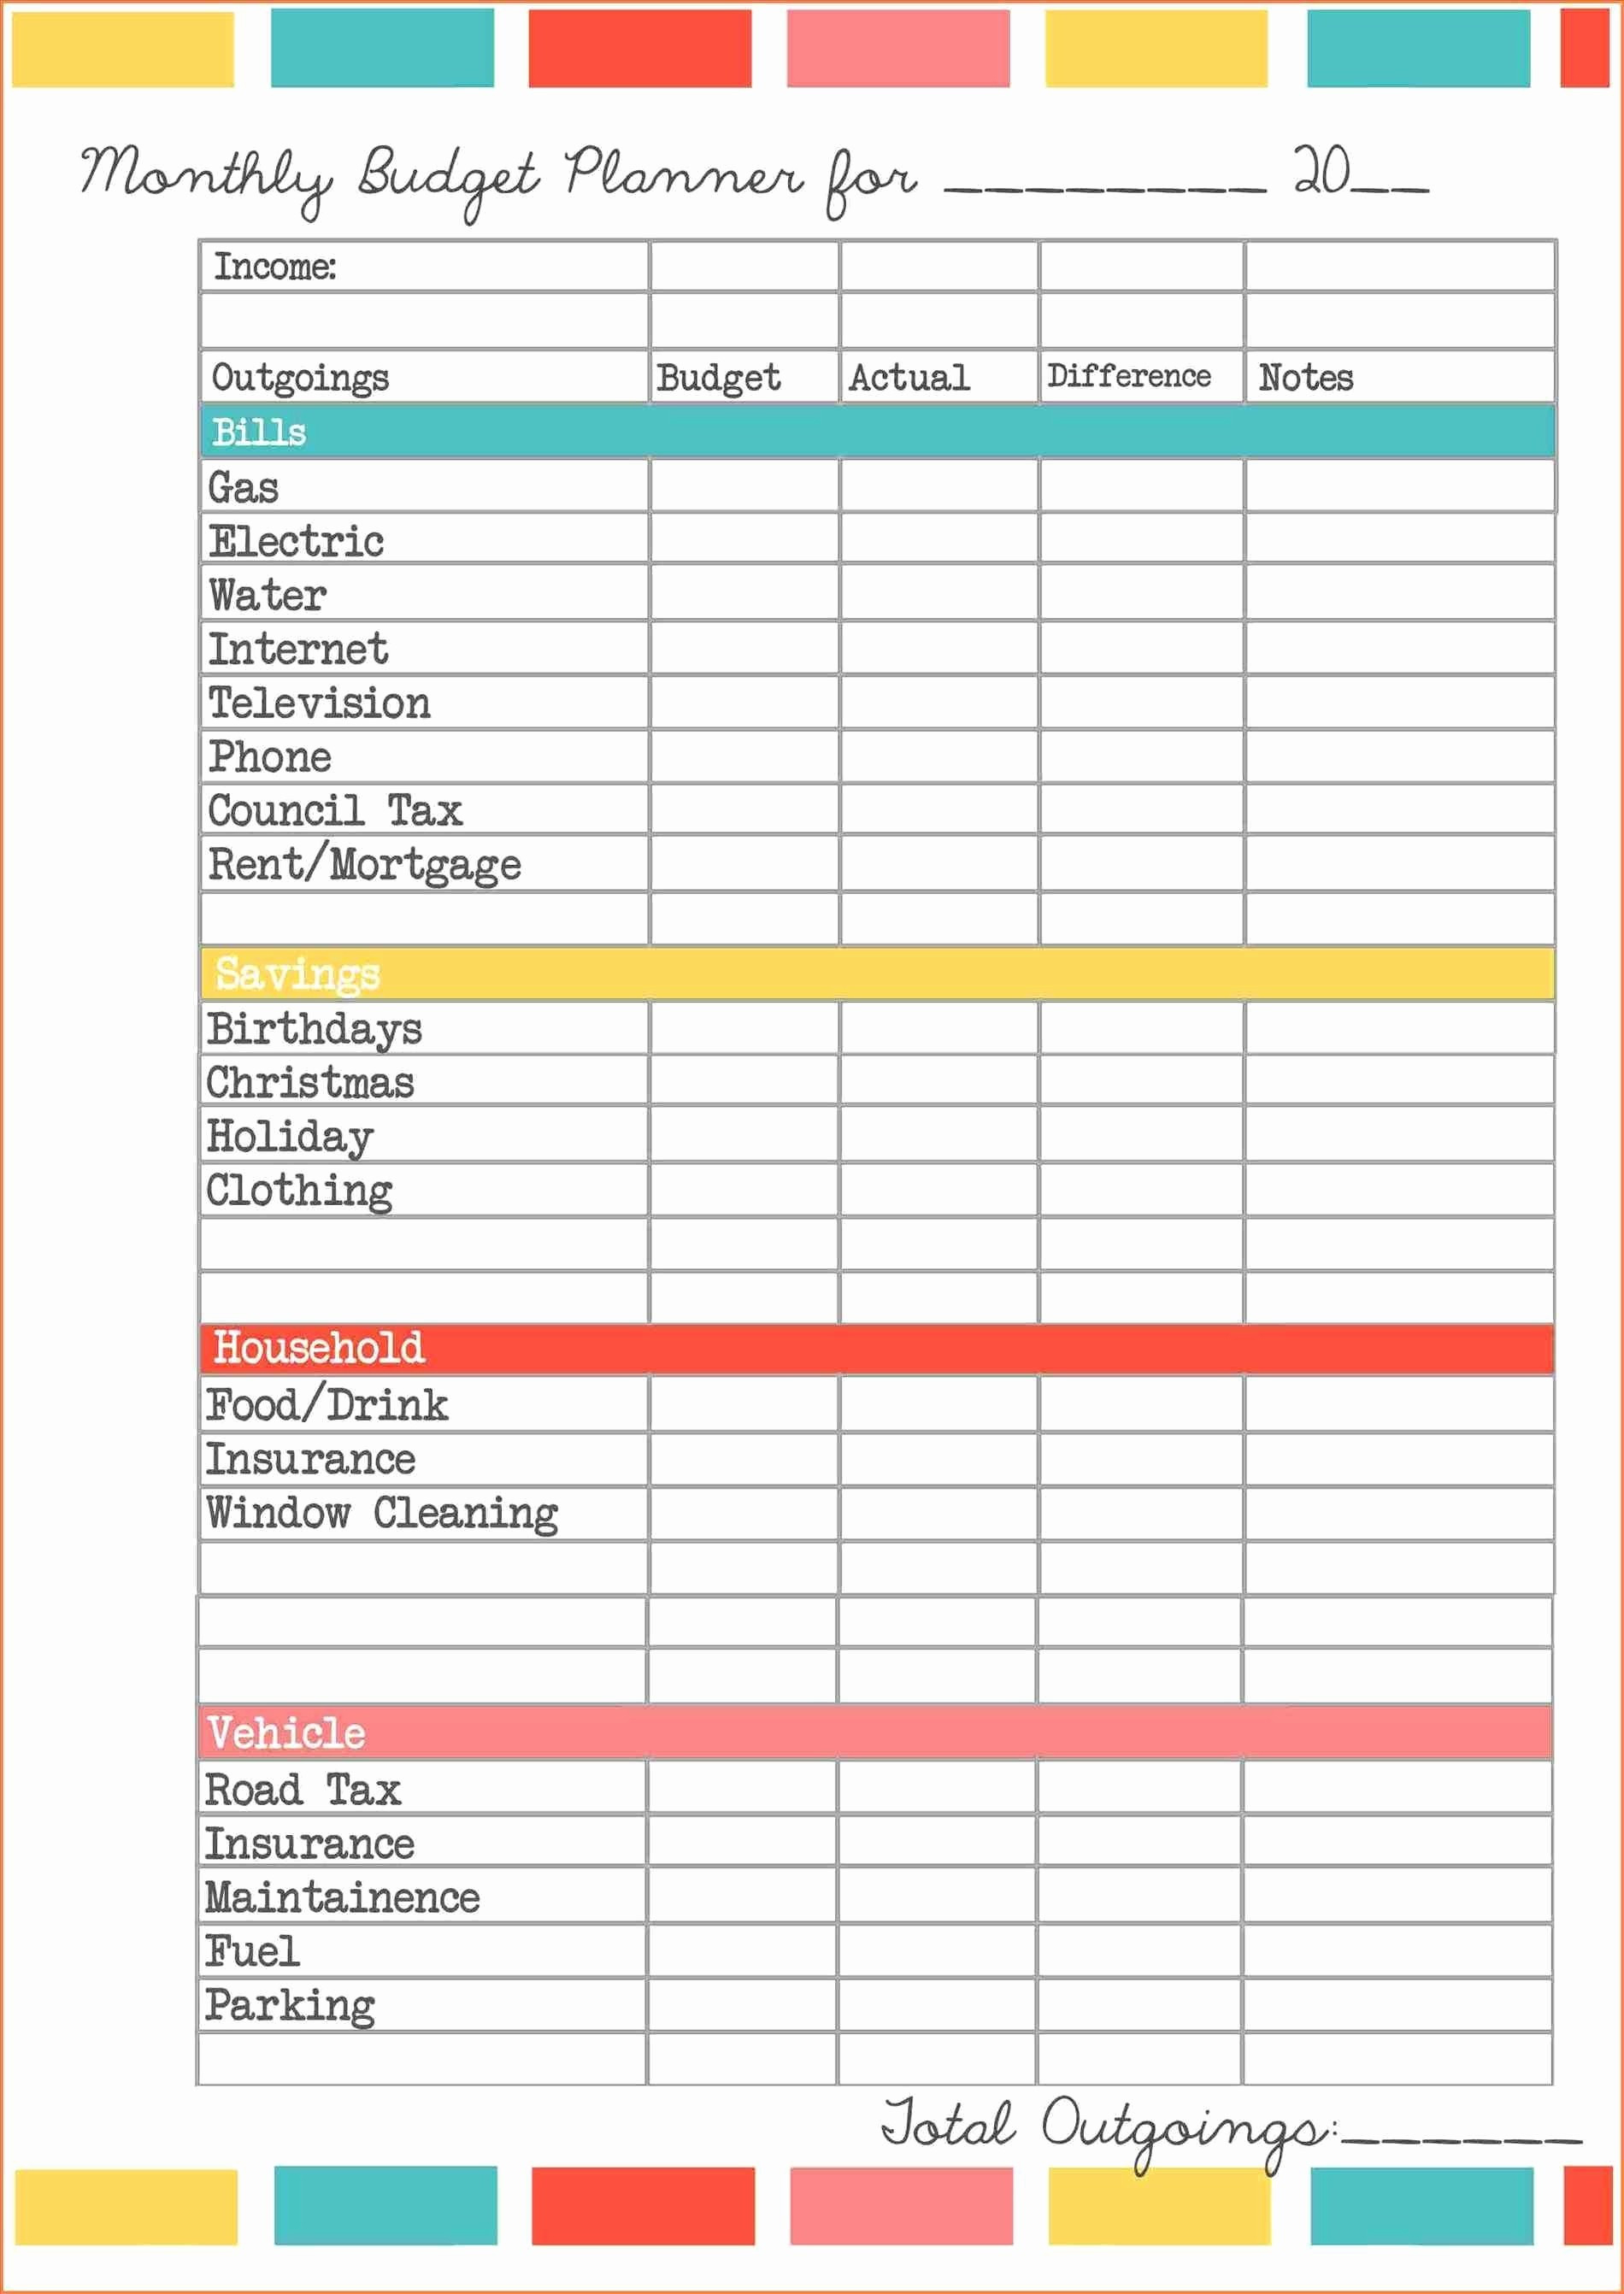 Example Of Freeing Spreadsheet Templates For Small Business Inside Free Spreadsheet Downloads